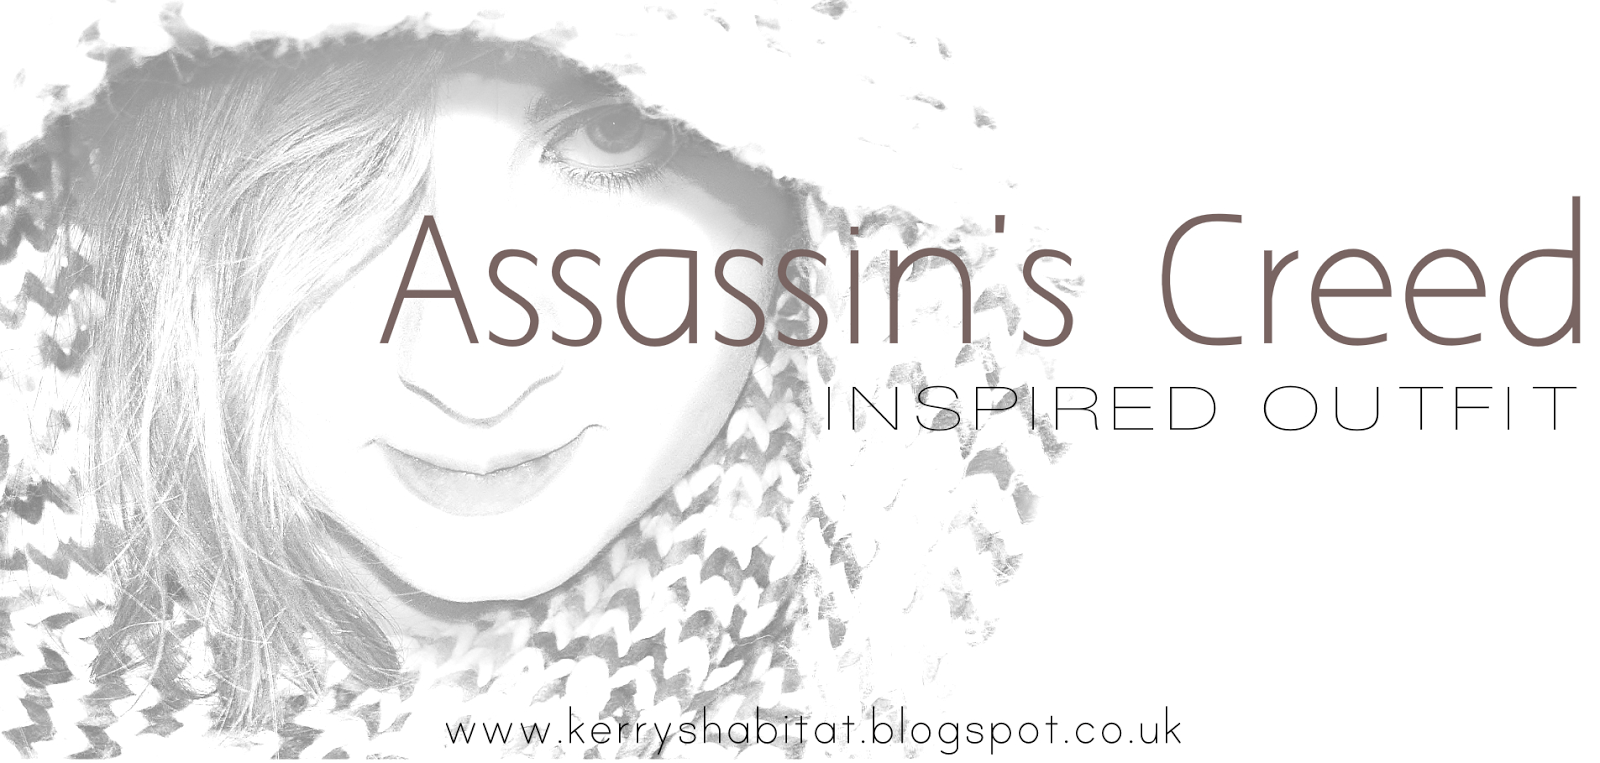 http://kerryshabitat.blogspot.co.uk/2014/03/honoring-creed-in-real-life-assassins.html